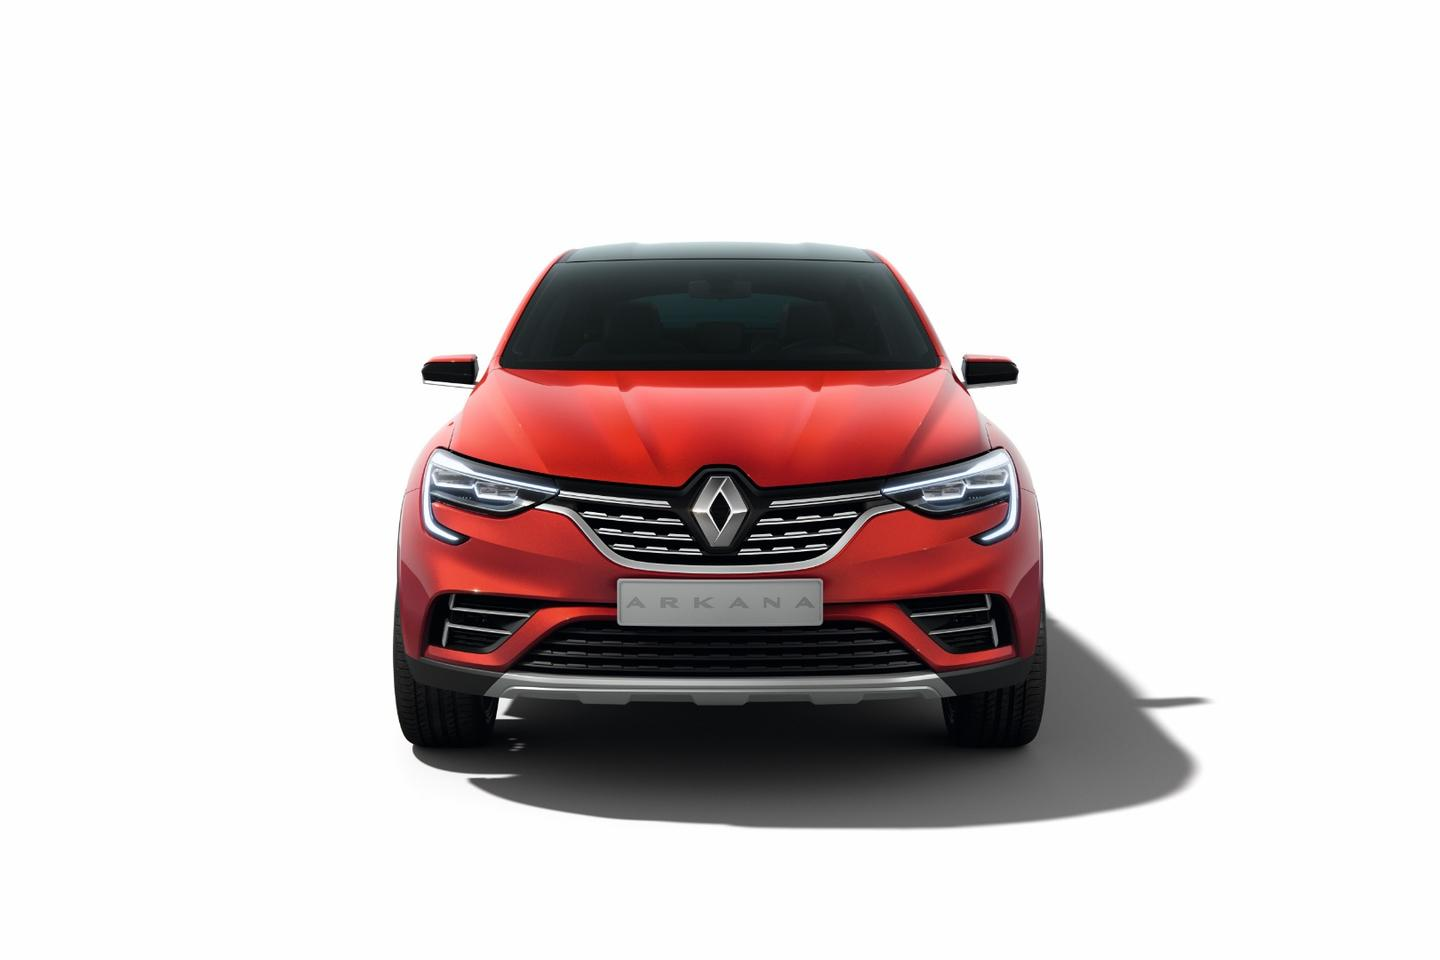 Renault Arkana: very ordinary looking front profile